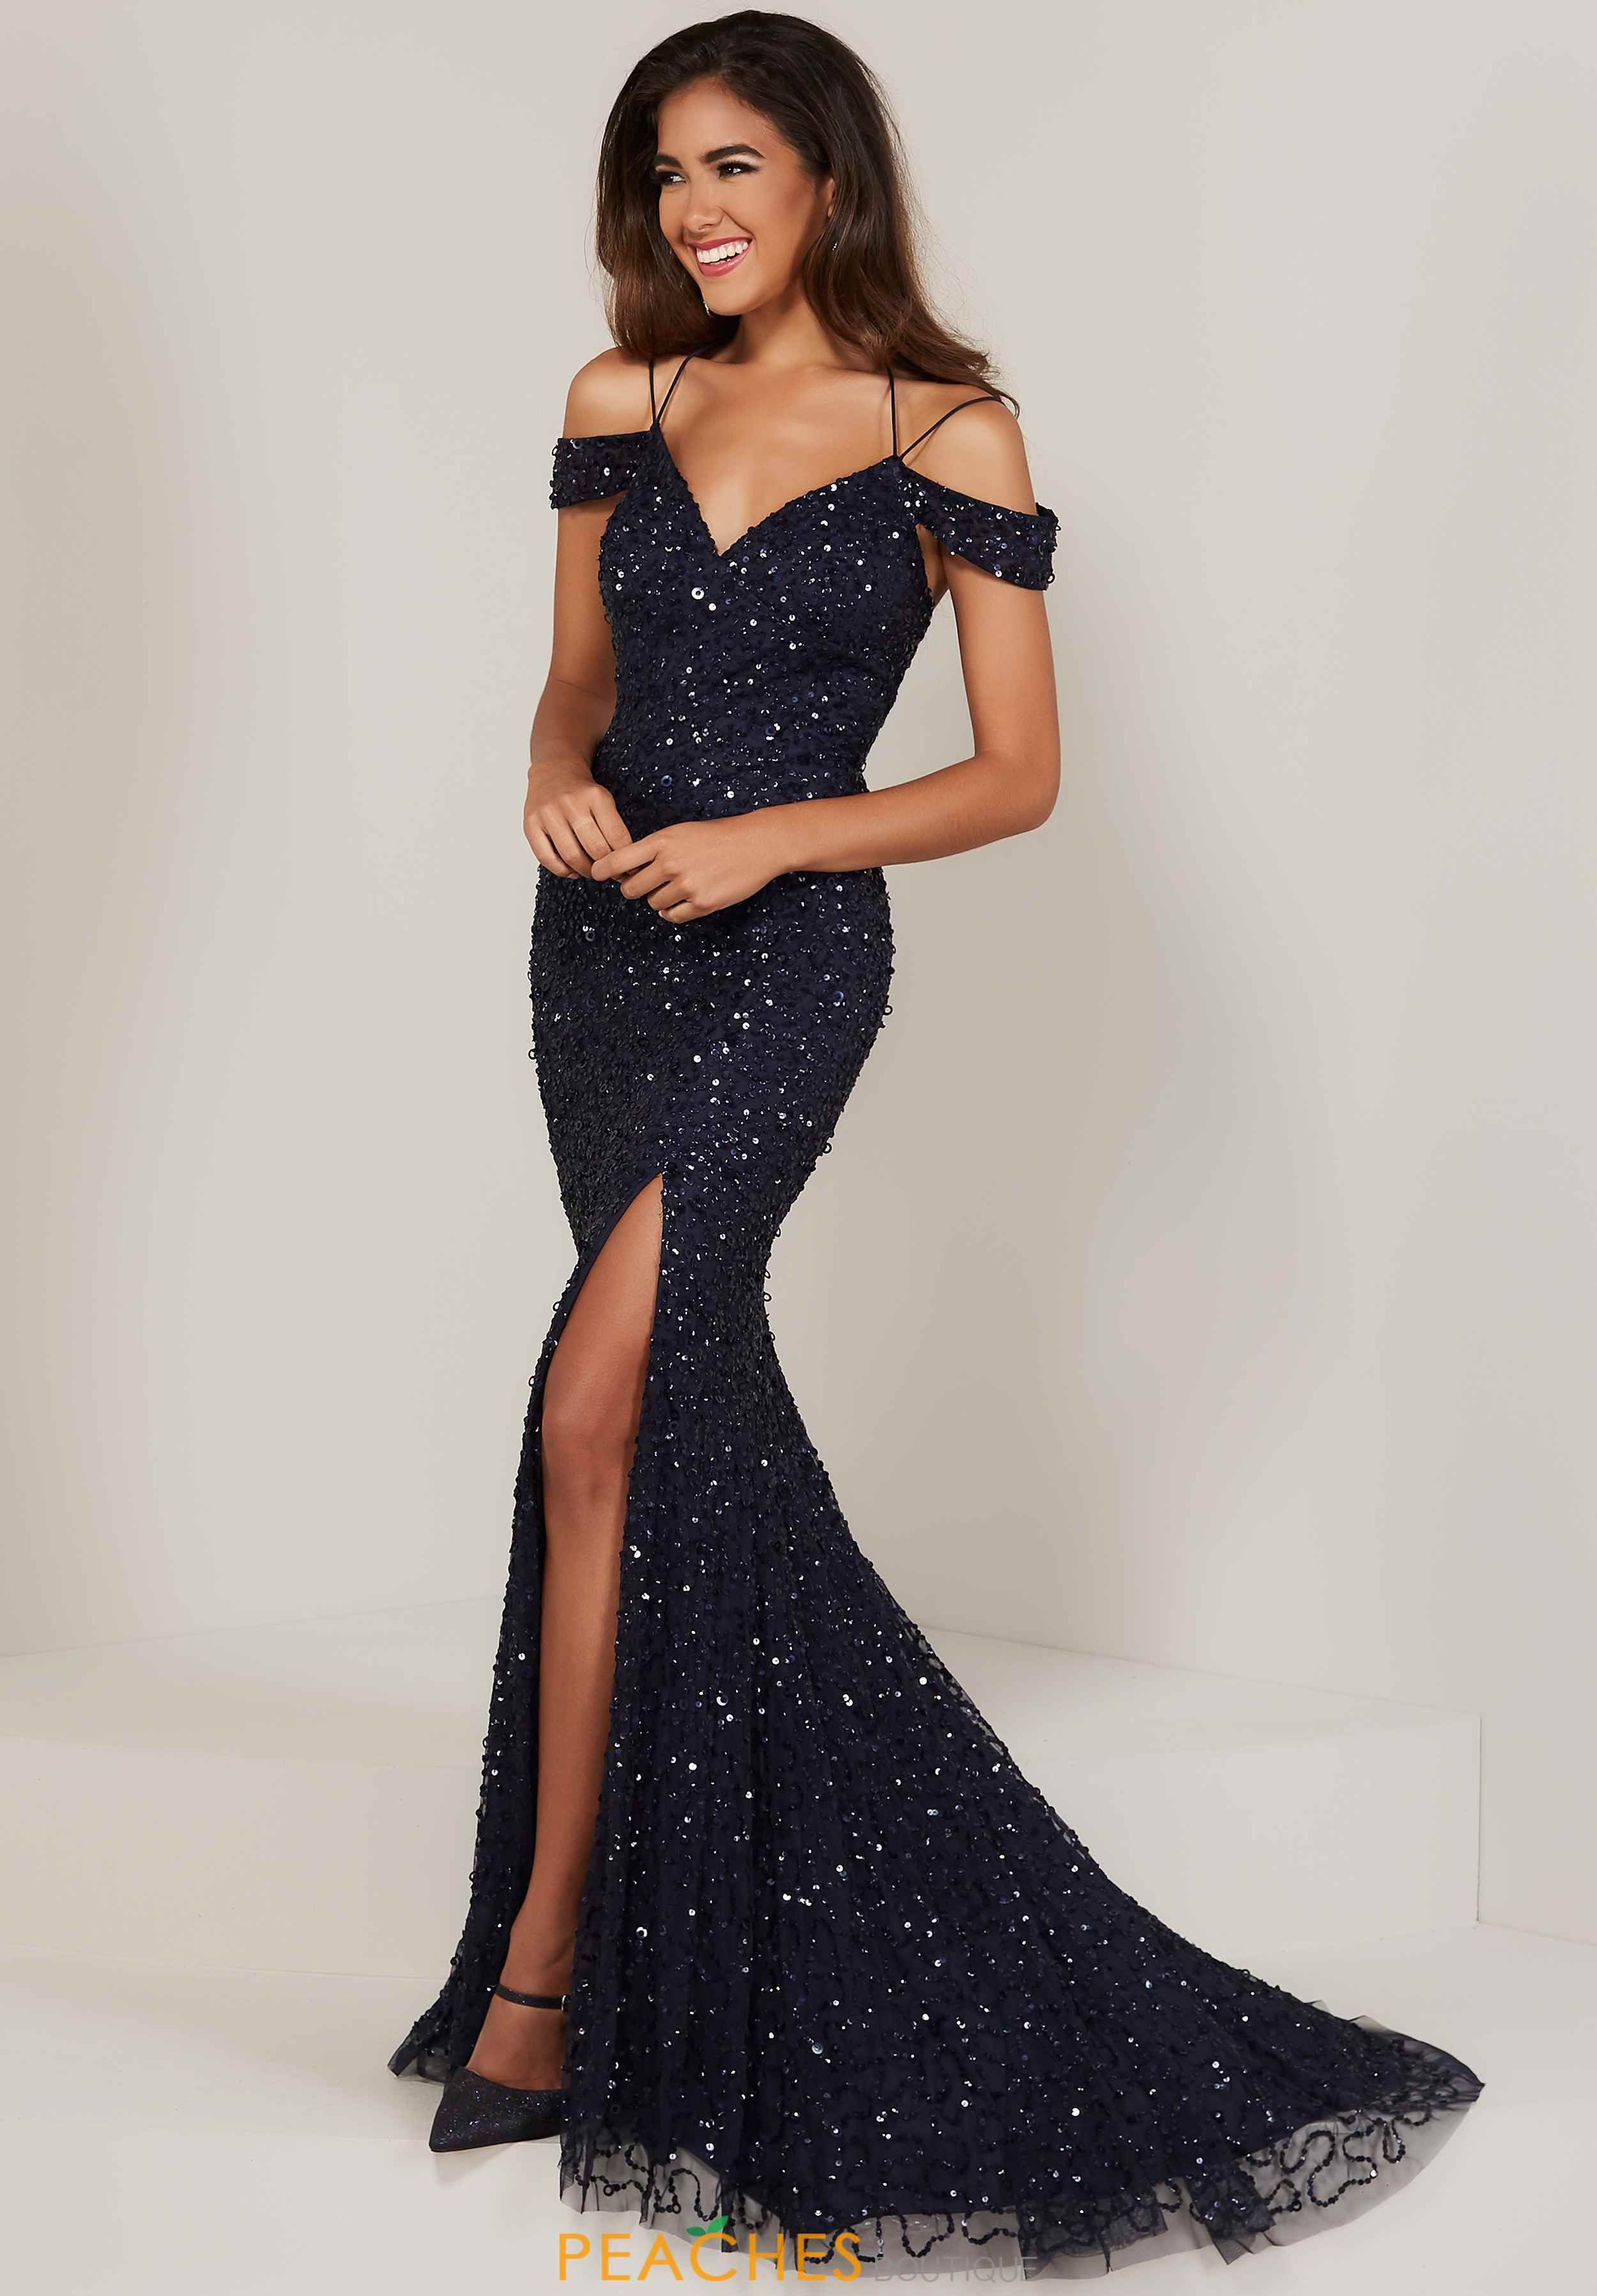 edad0e9ab761 Tiffany Full Figured Fitted Dress 16335 in 2019